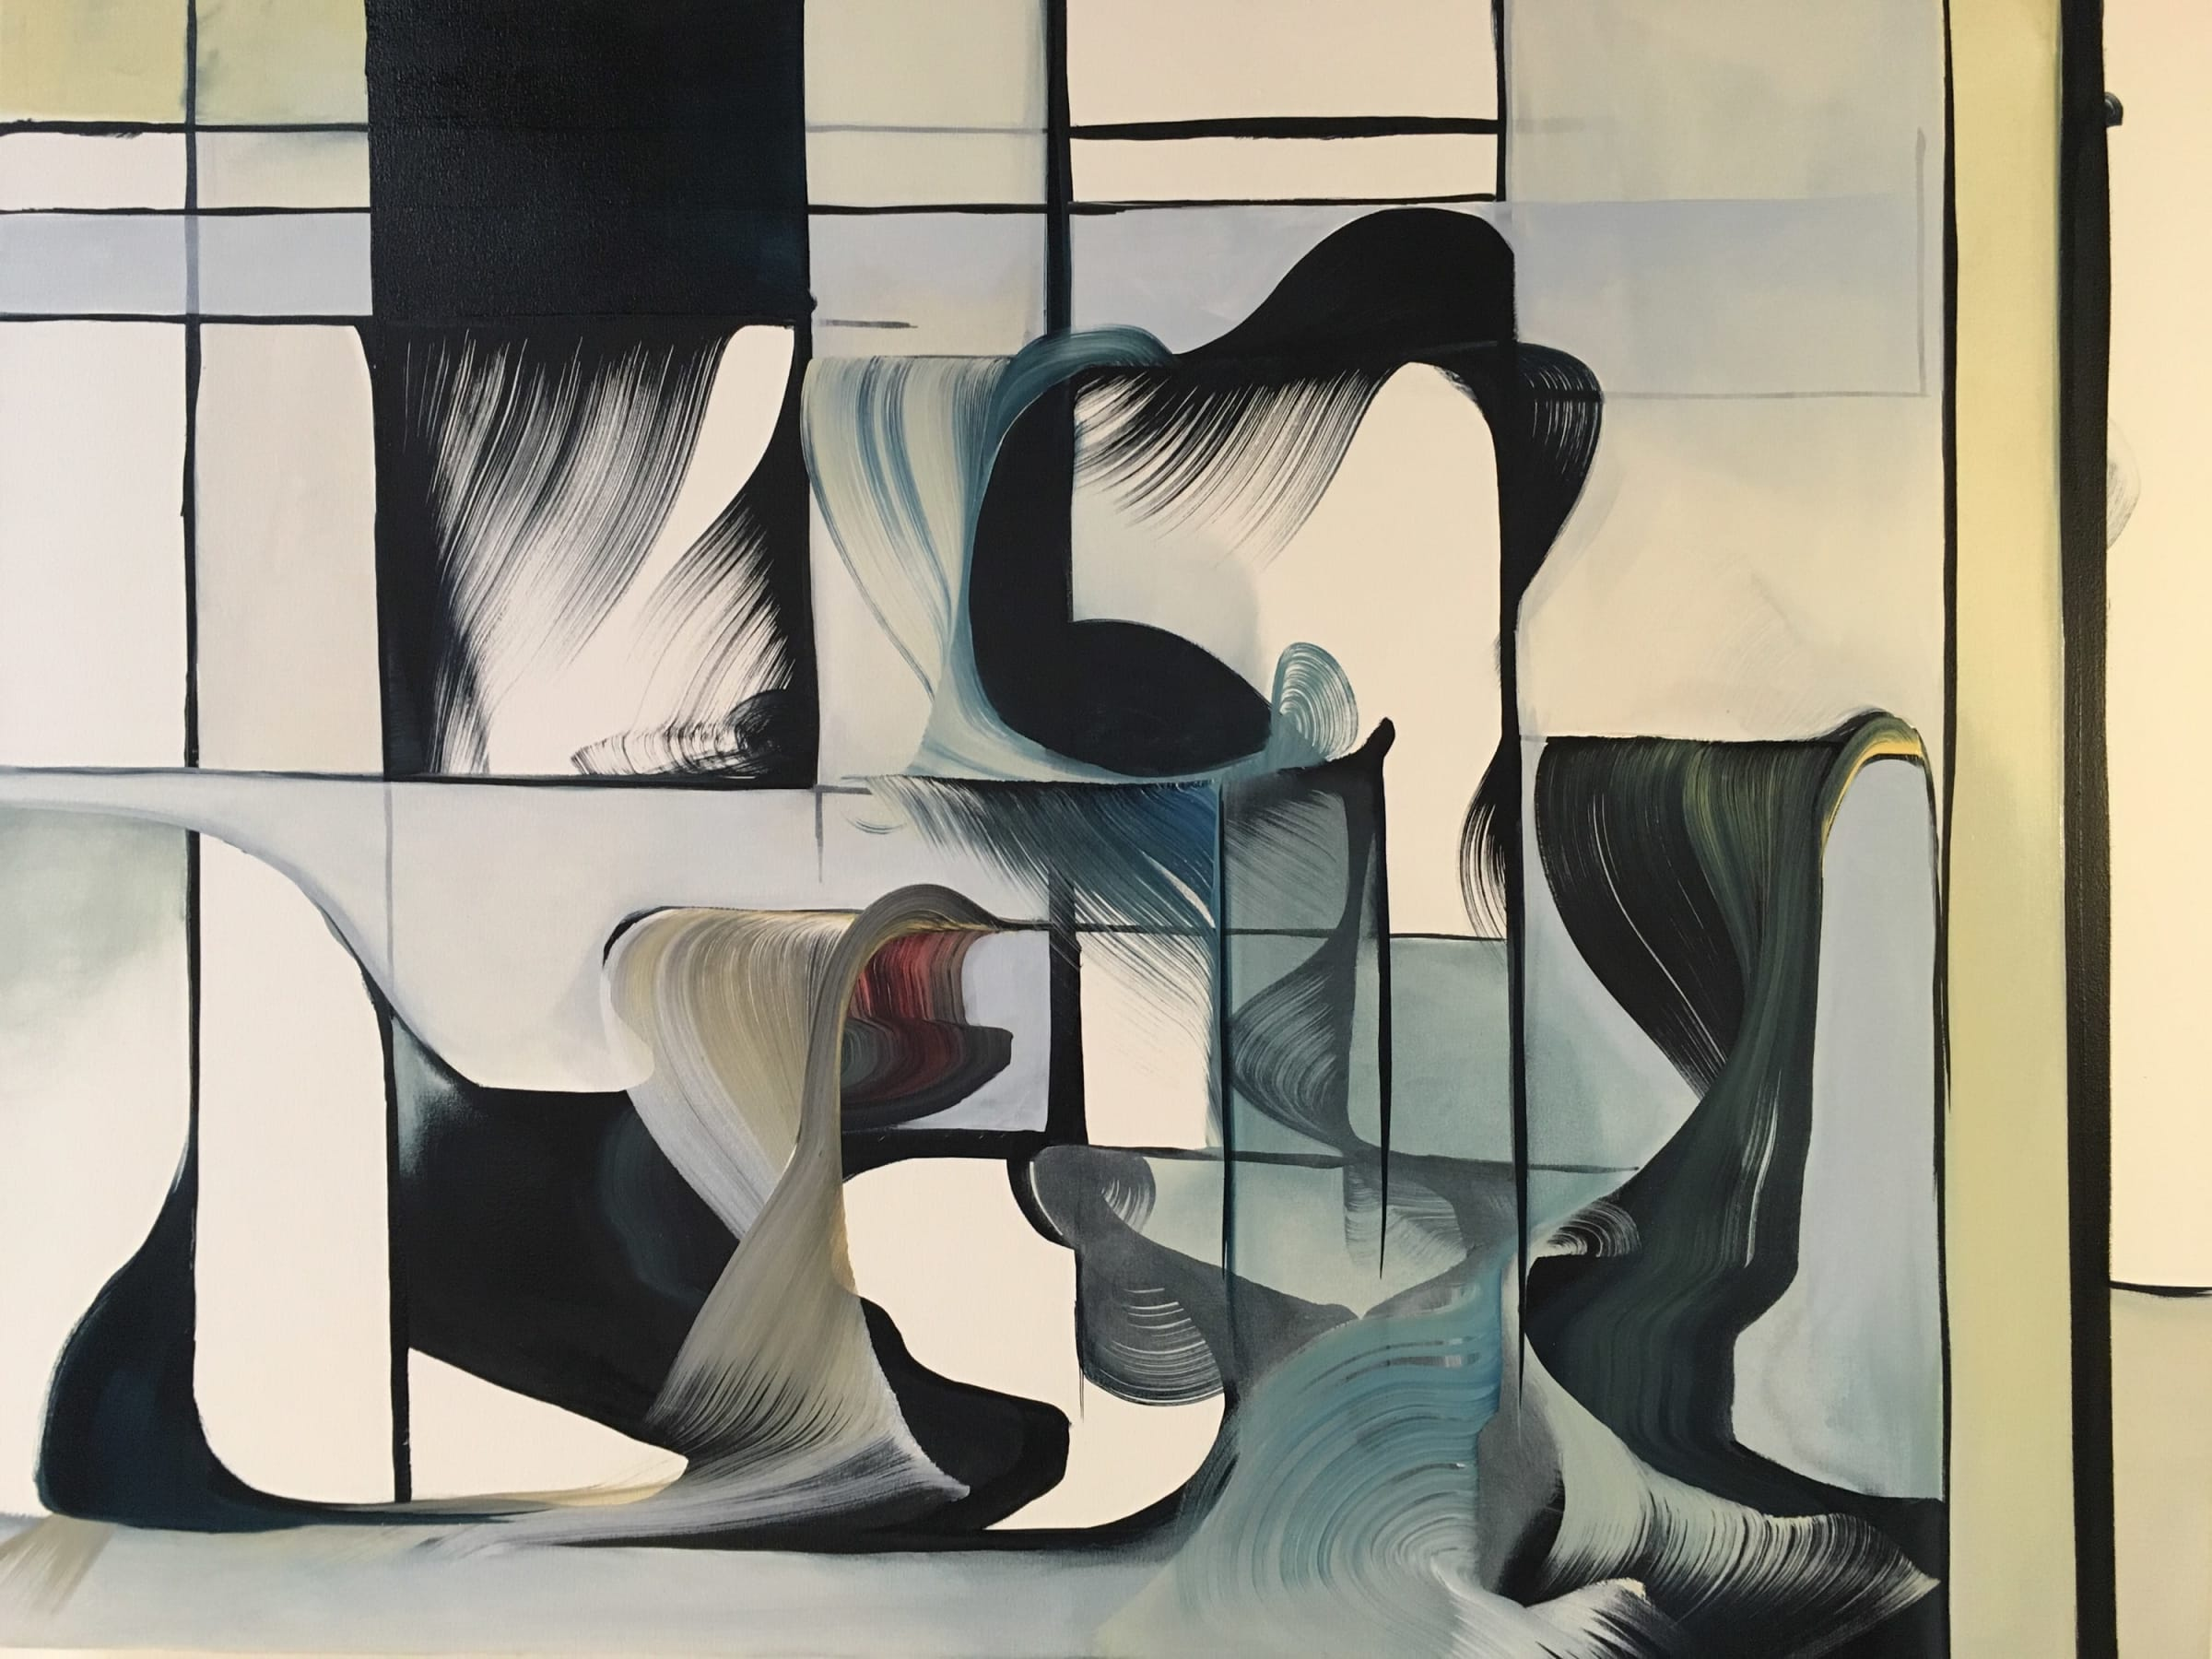 """<span class=""""link fancybox-details-link""""><a href=""""/artists/71-laina-terpstra/works/534-laina-terpstra-untitled-12/"""">View Detail Page</a></span><div class=""""artist""""><strong>Laina Terpstra</strong></div> <div class=""""title""""><em>Untitled 12</em></div> <div class=""""medium"""">Oil on Canvas </div> <div class=""""dimensions"""">36 x 48 inches </div>"""